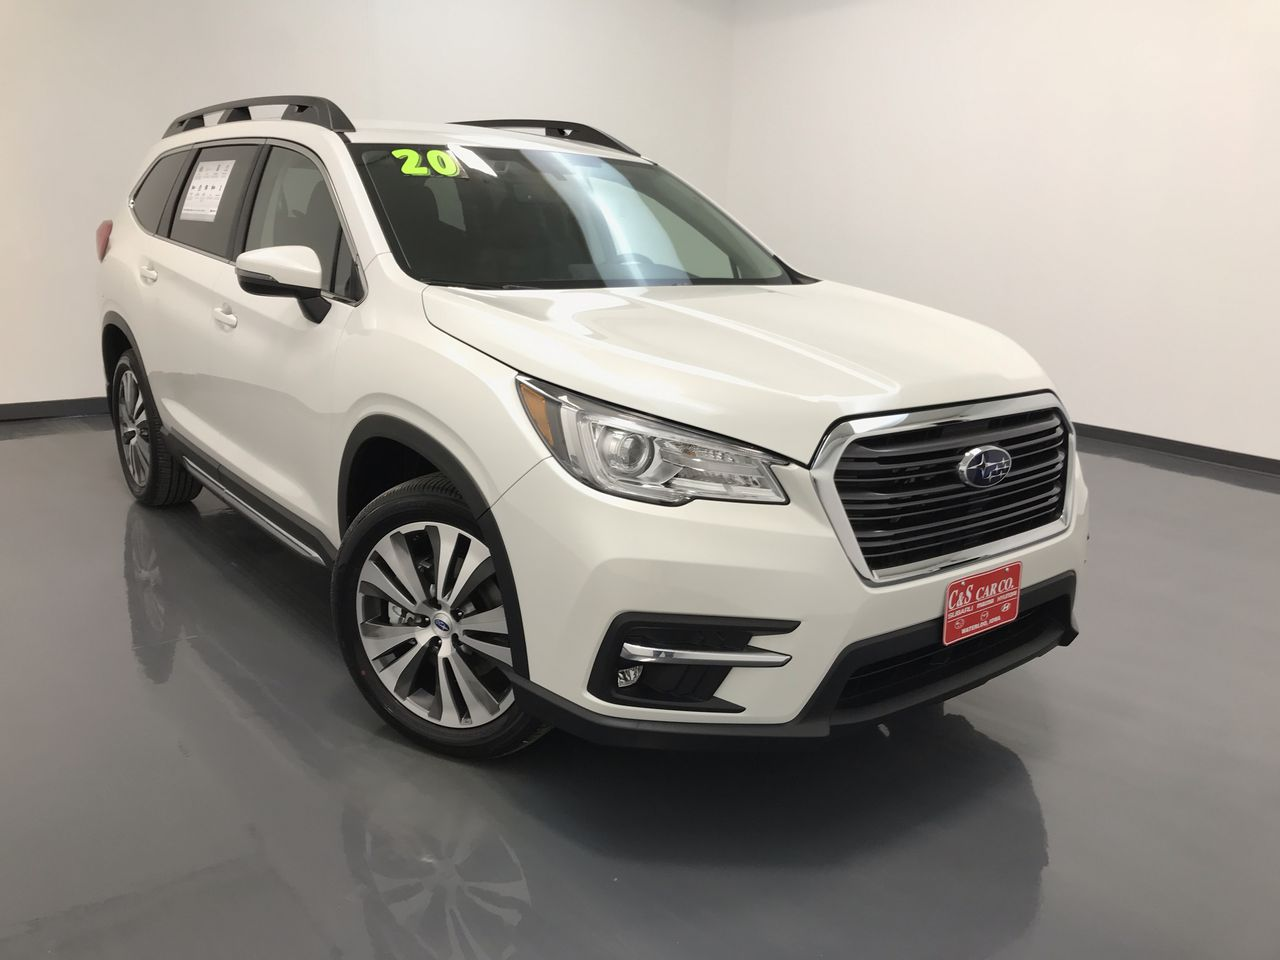 2020 Subaru ASCENT Limited AWD w/Eyesight  - SB8298  - C & S Car Company